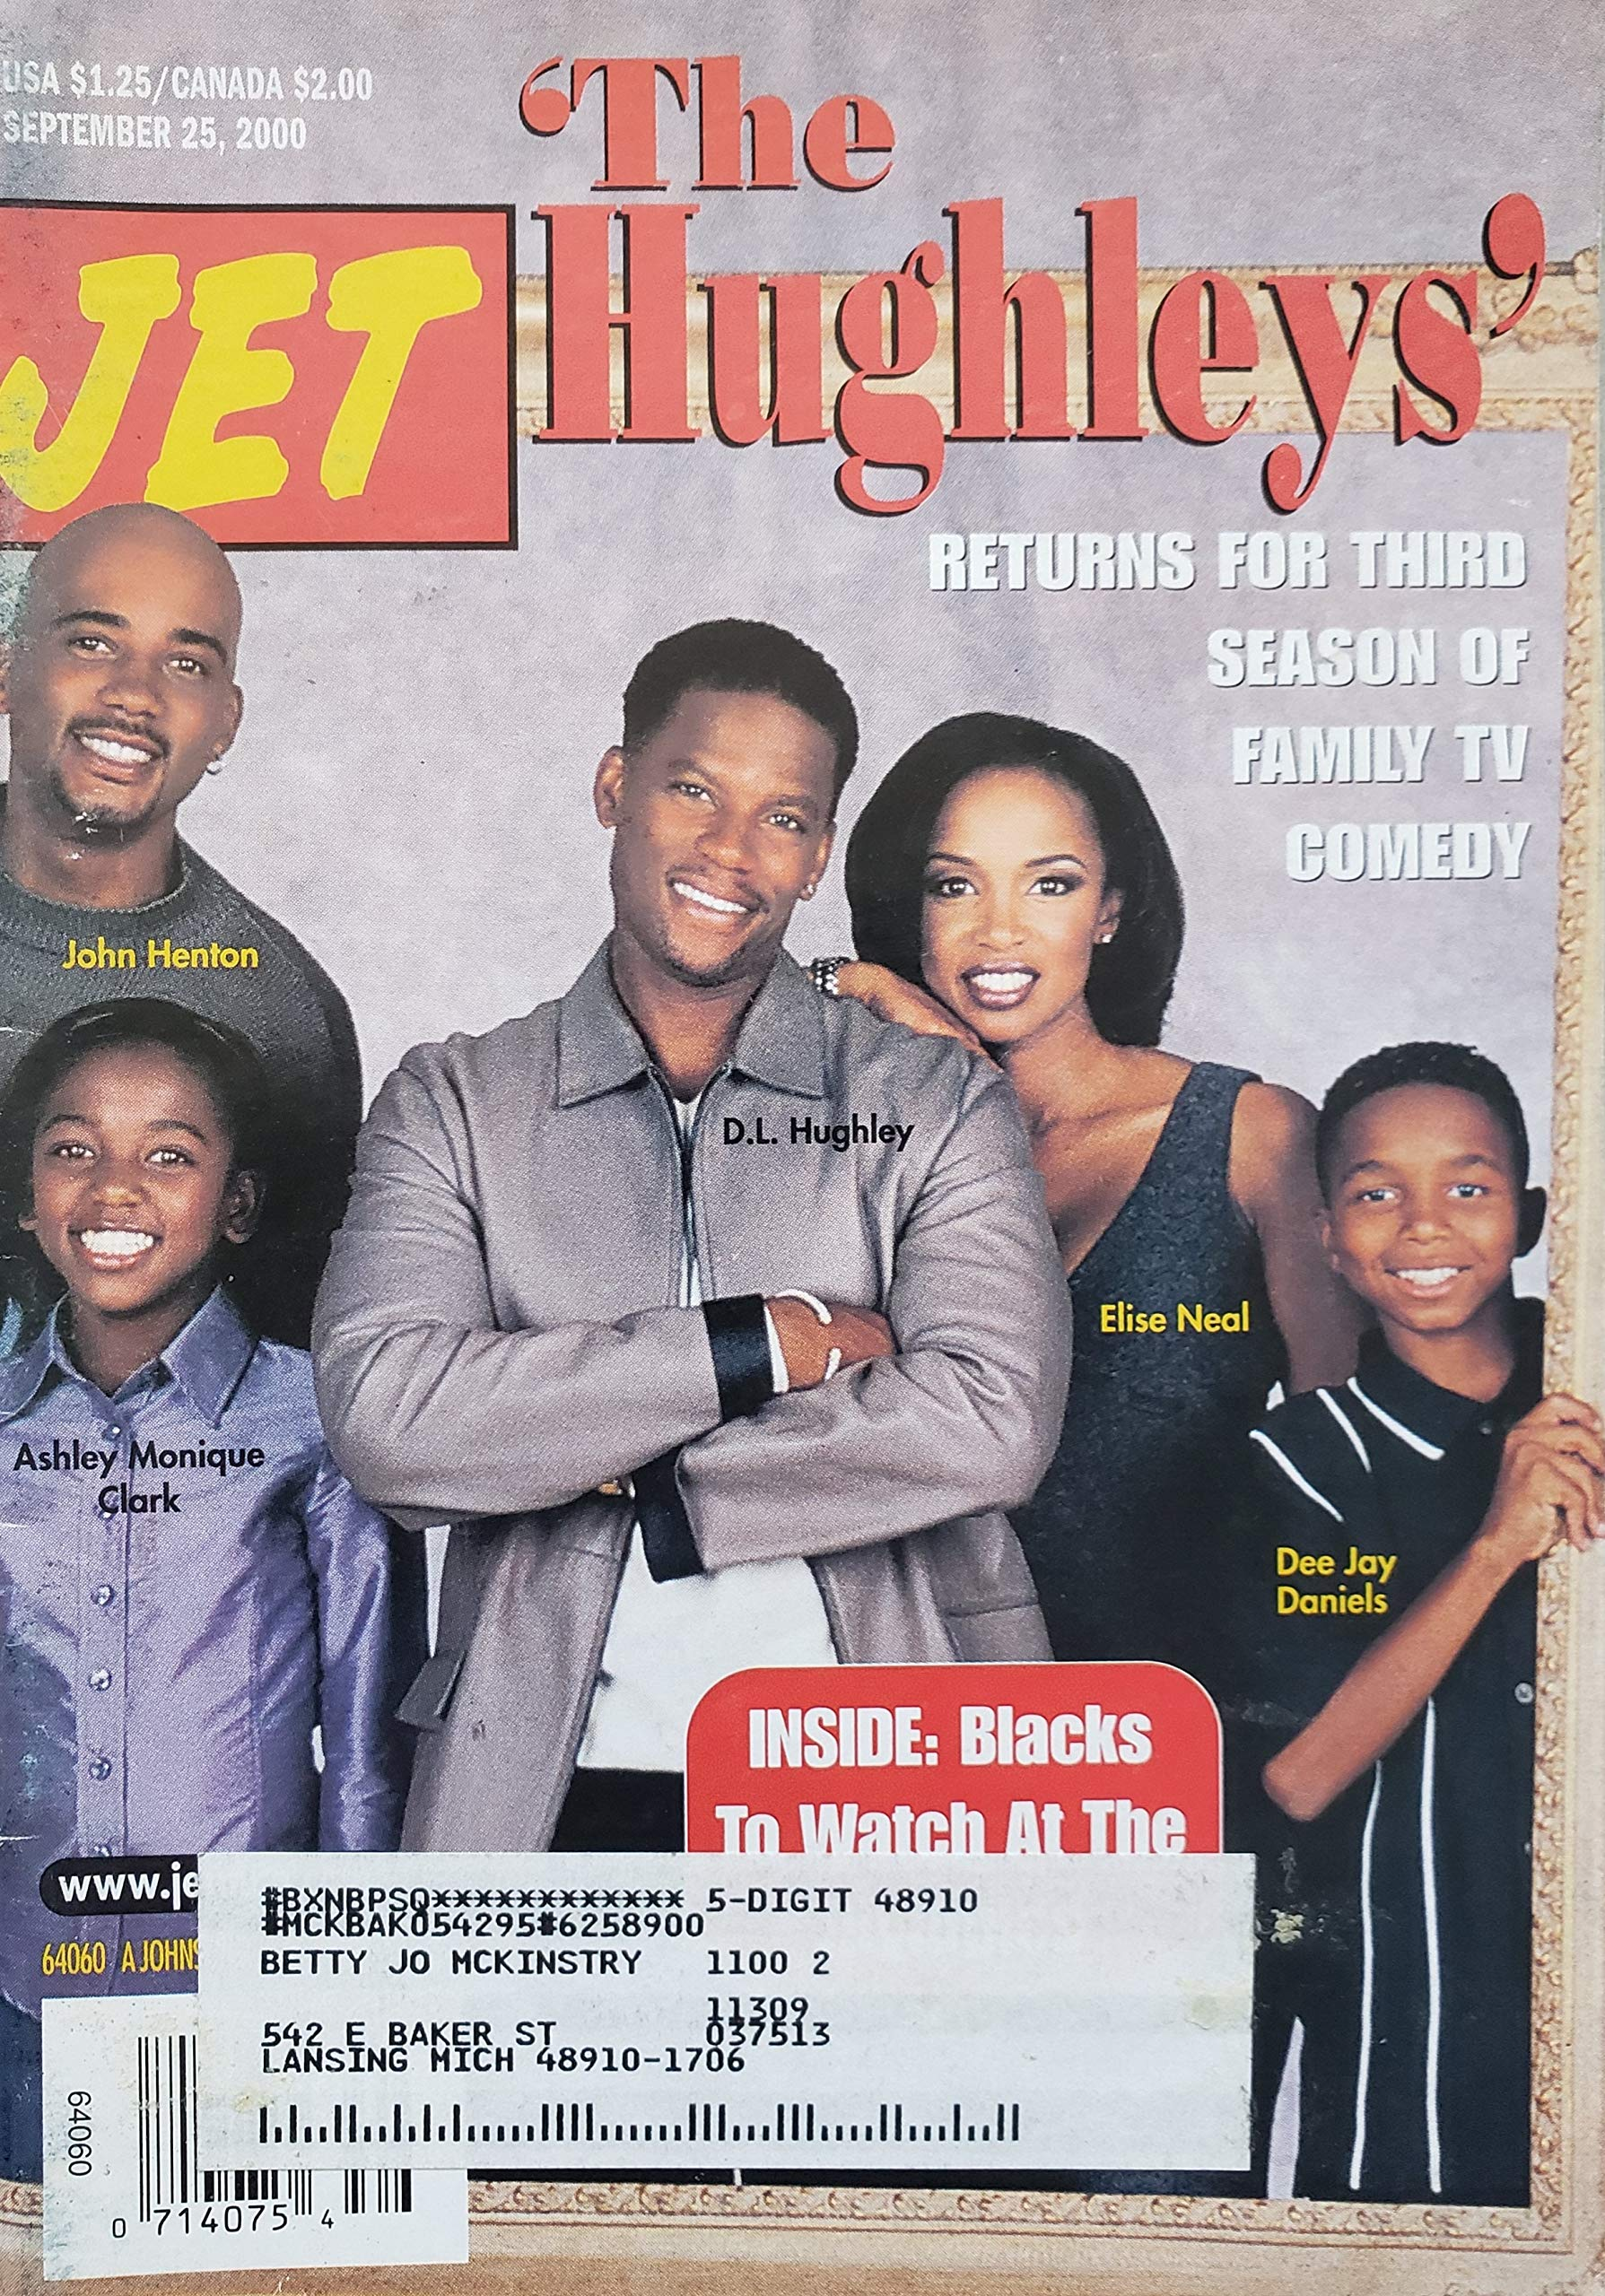 Jet Magazine September 25 2000 The Hughleys Returns For Third Season Of Family Tv Comedy Jet Magazine Amazon Com Books